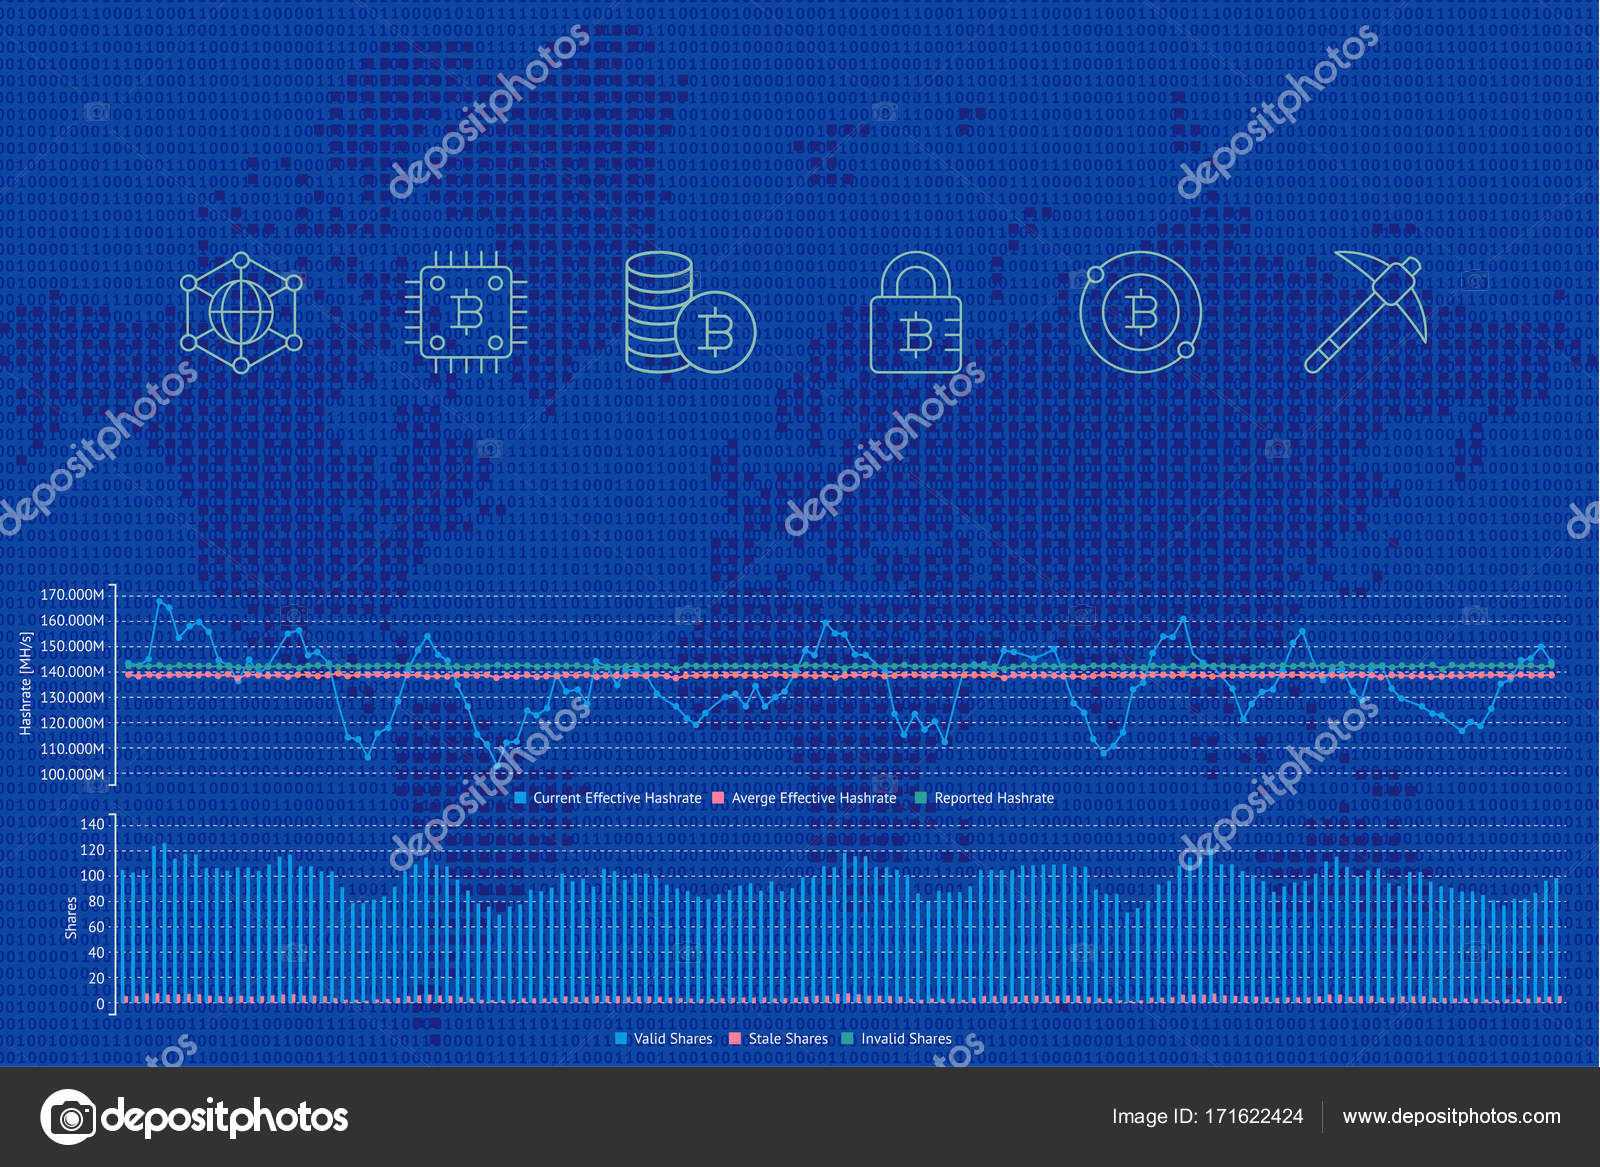 Blockchain background with icons stock vector uzhveko 171622424 blockchain vector illustration background with icons graphs and diagram on a world map background crypto currency bitcoin etherium dash litecoin gumiabroncs Image collections